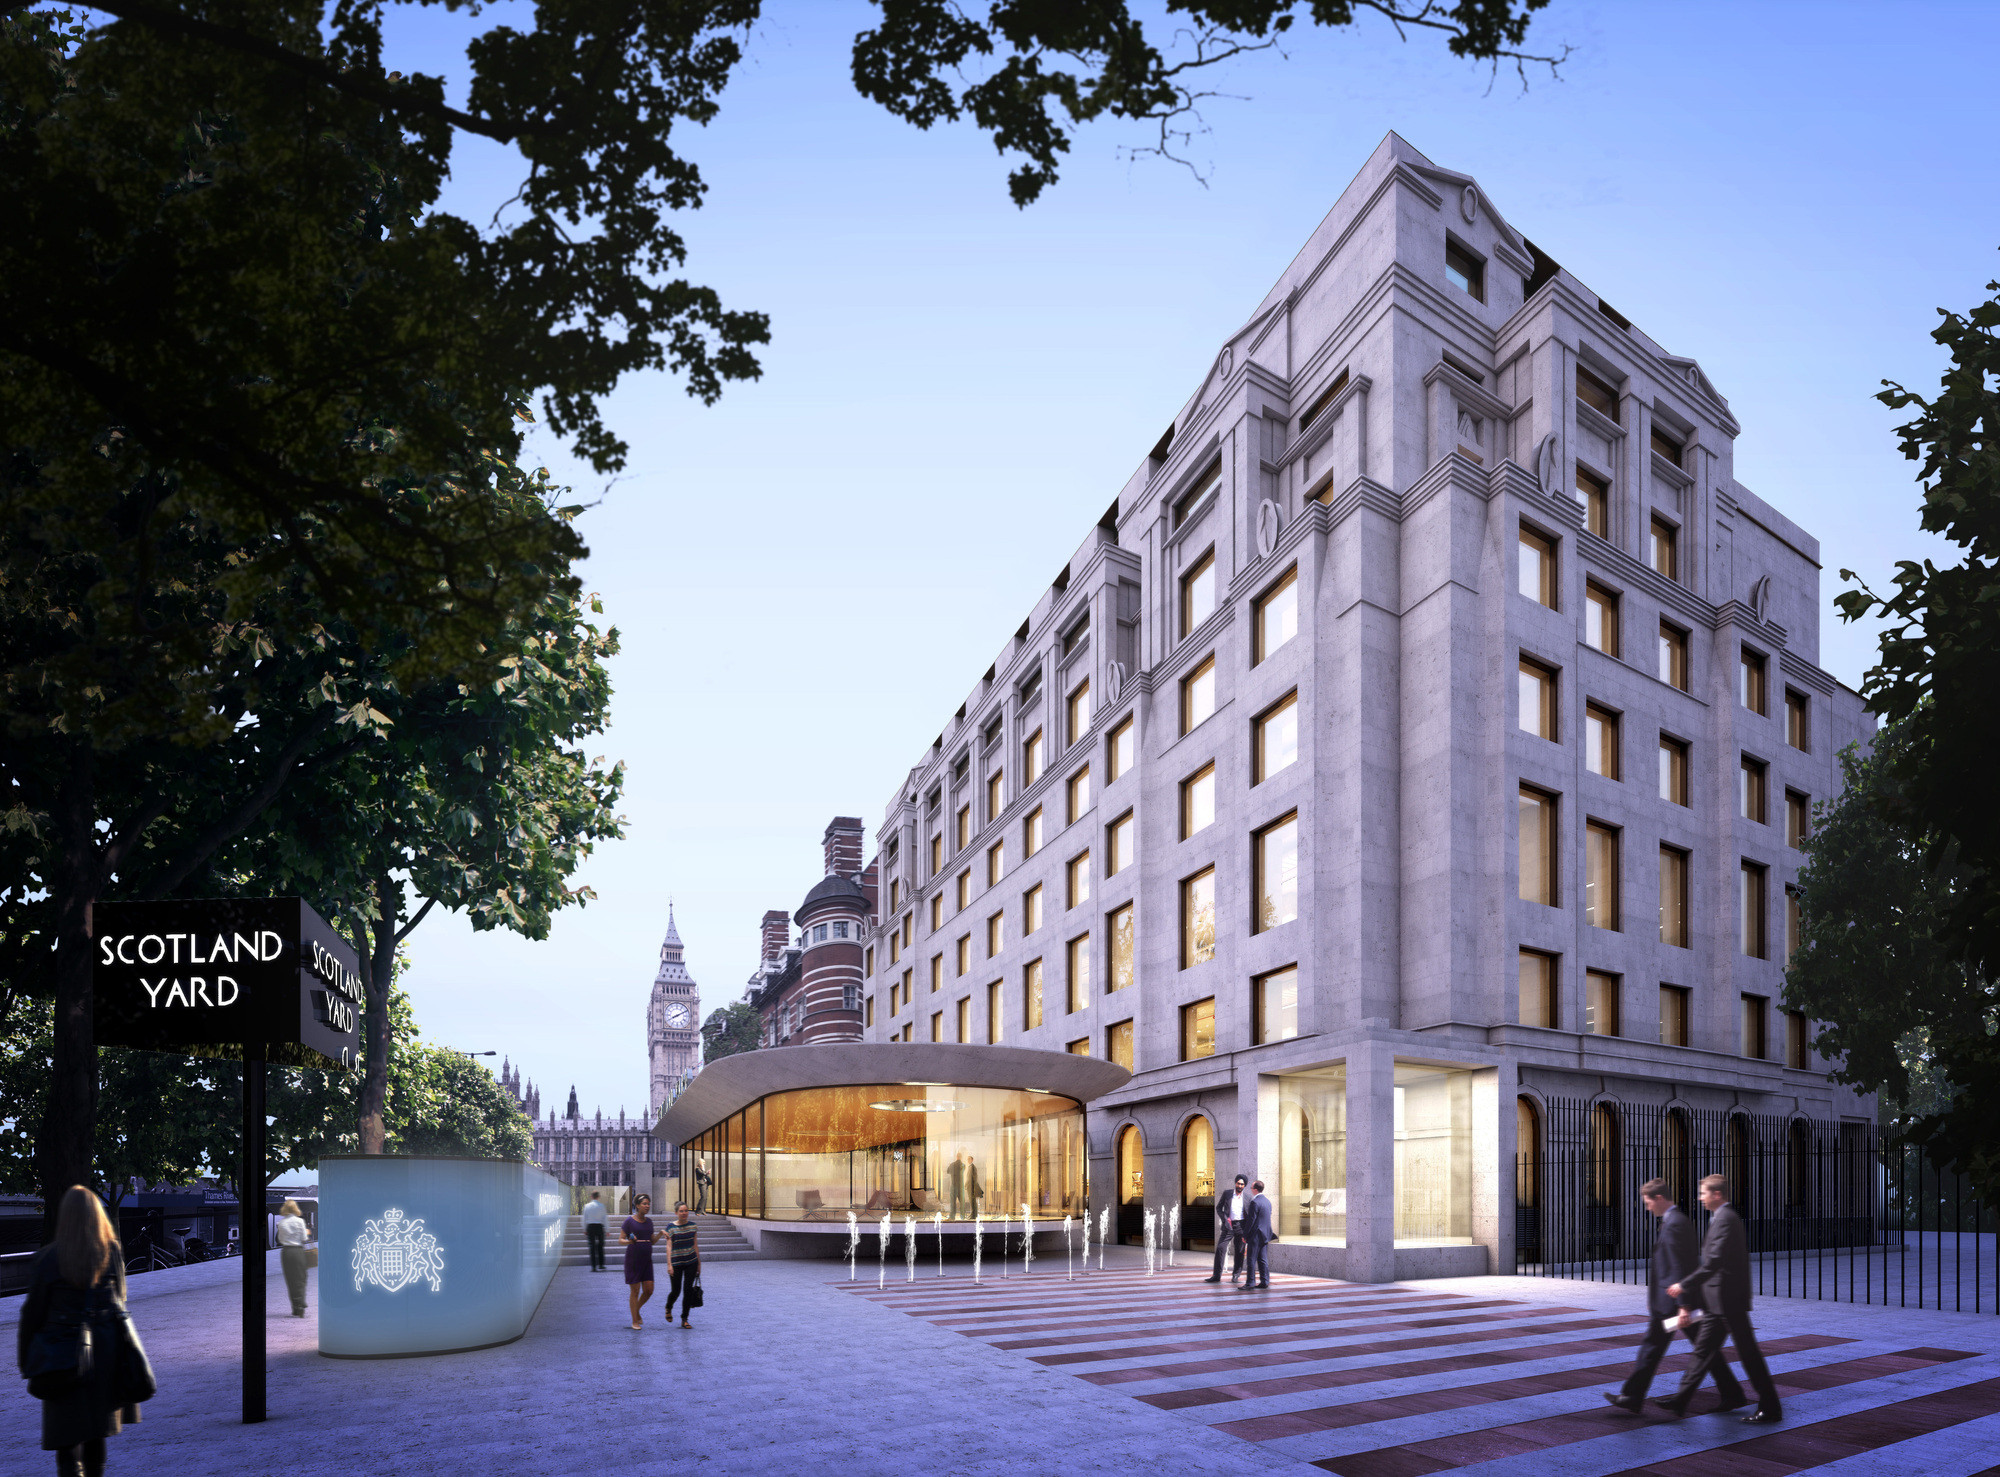 AHMM to Design London's New Metropolitan Police HQ, Winning Design (Allford Hall Monaghan Morris). Image Courtesy of Greater London Authority (GLA)